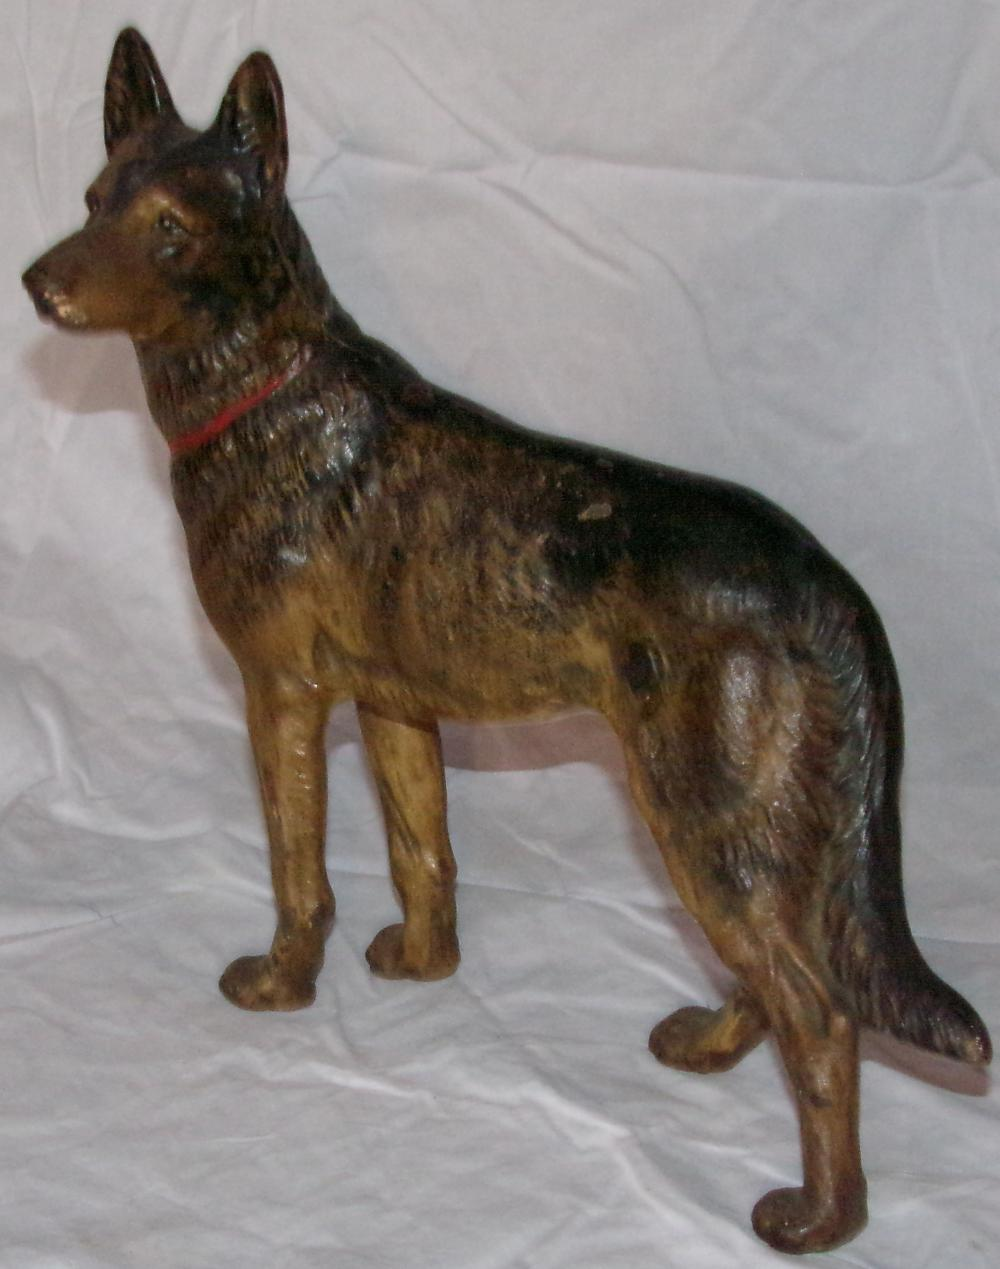 "Vintage cast iron German Shepherd dog form doorstop in standing position, painted with a red collar, some paint loss & rust visible, 9 3/8"" T x 10"" L x 2 ¾"" D"